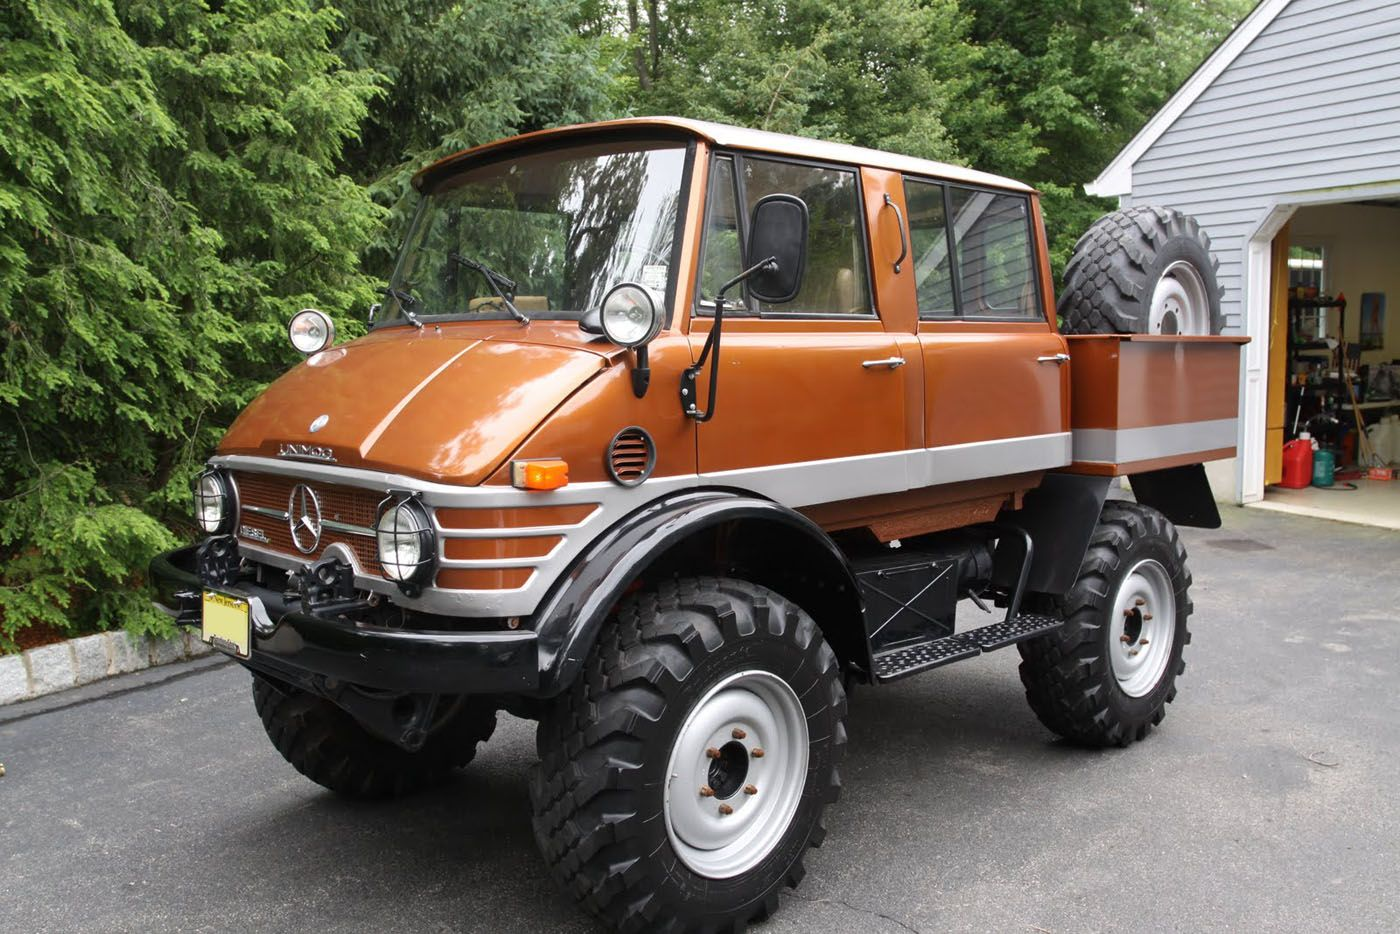 1974 Mercedes Benz Unimog Maintenance/restoration of old/vintage ...